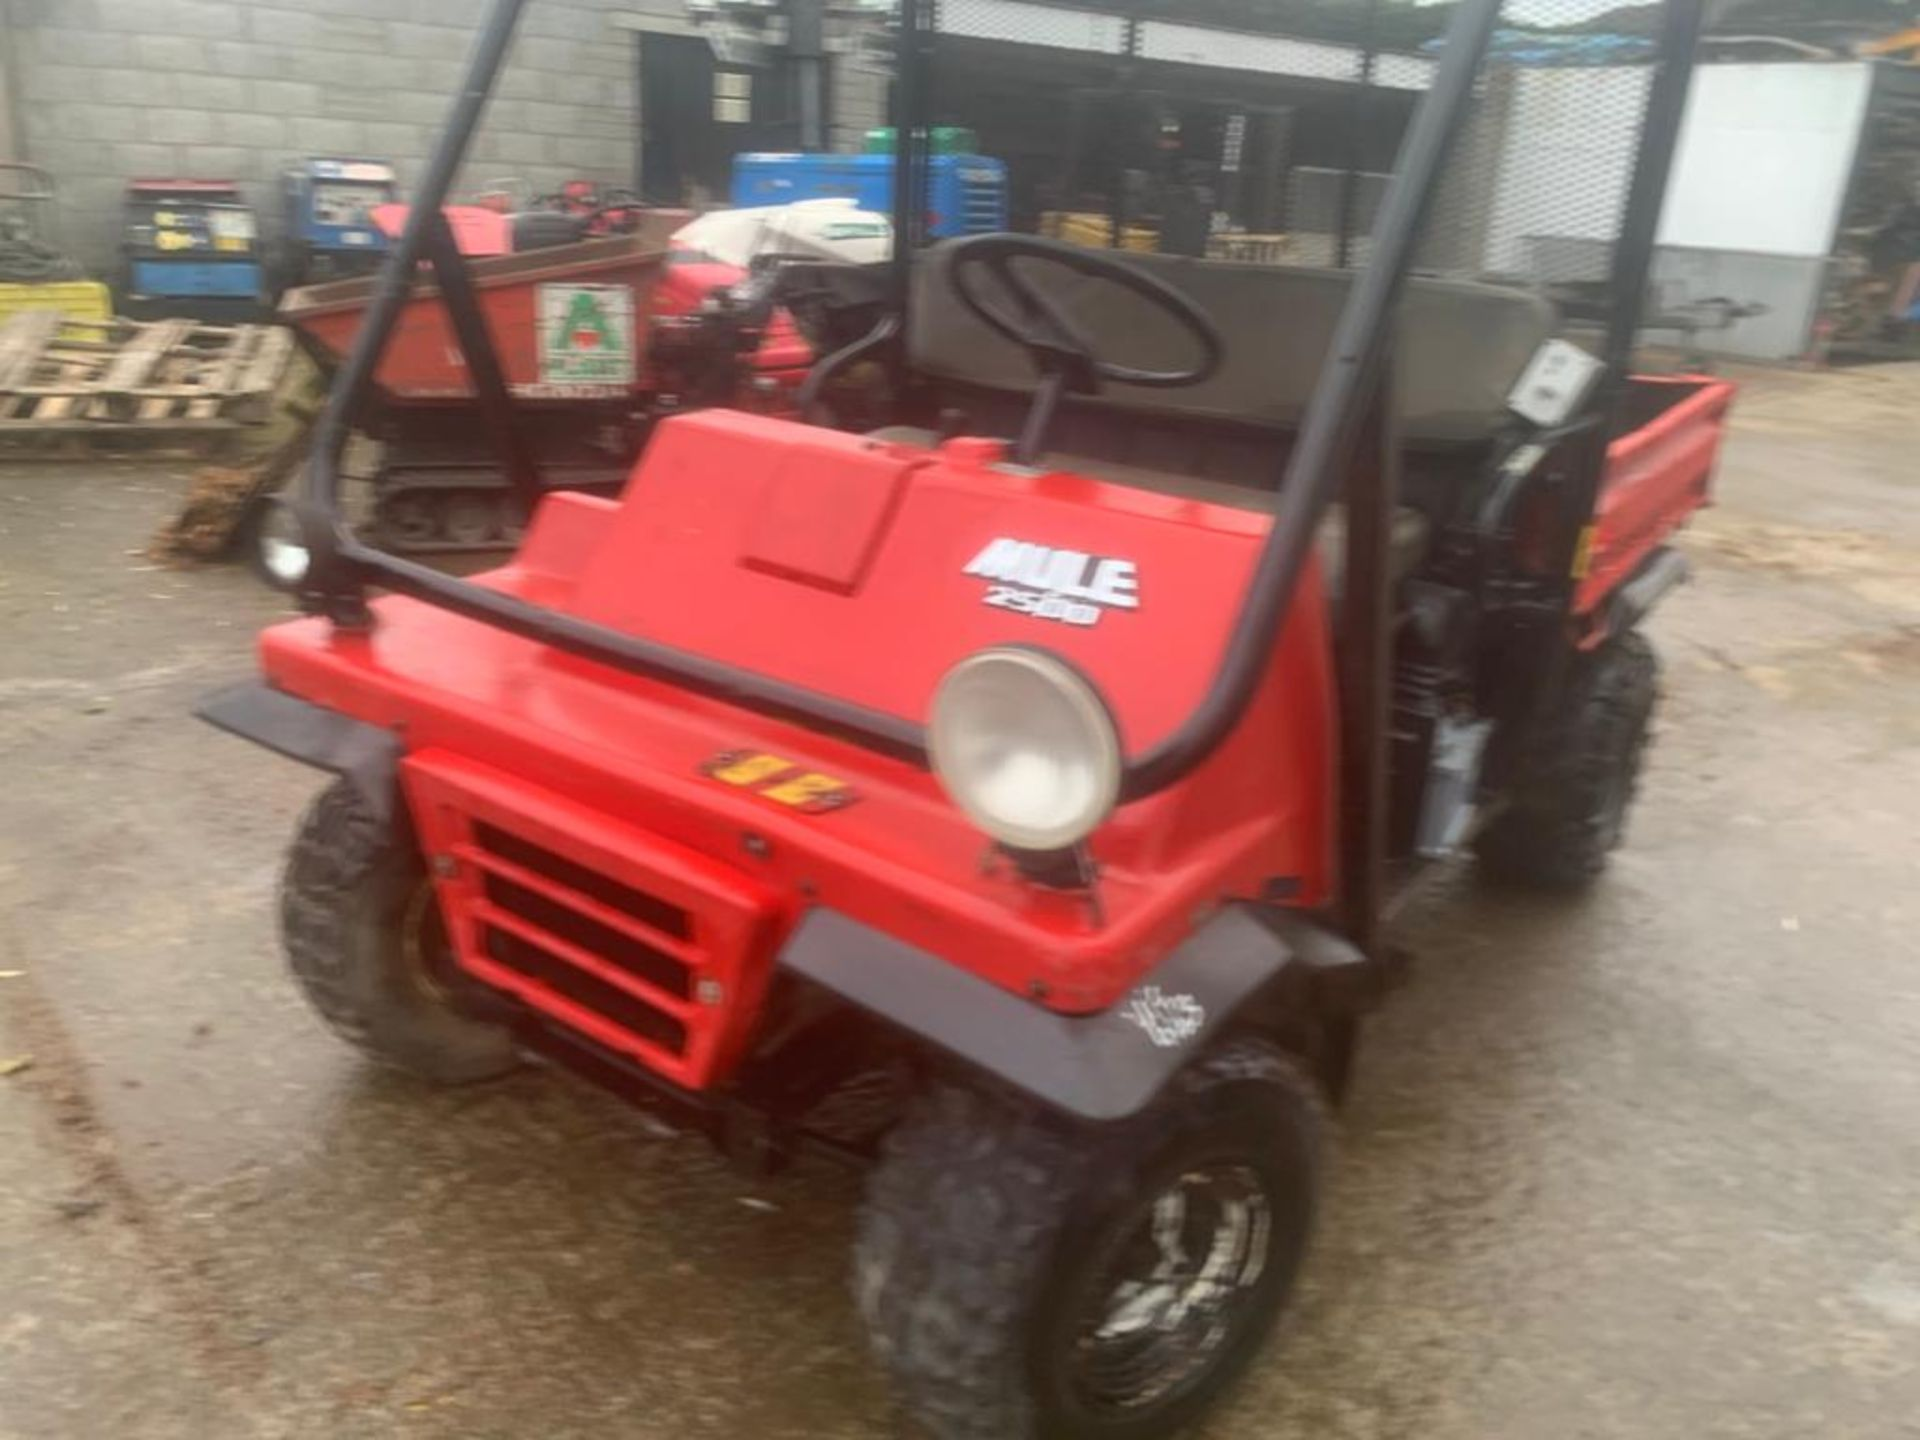 KAWASAKI PETROL MULE, DELIVERY ANYWHERE IN THE UK £300, STARTS, RUNS AND DRIVES *PLUS VAT* - Image 7 of 7